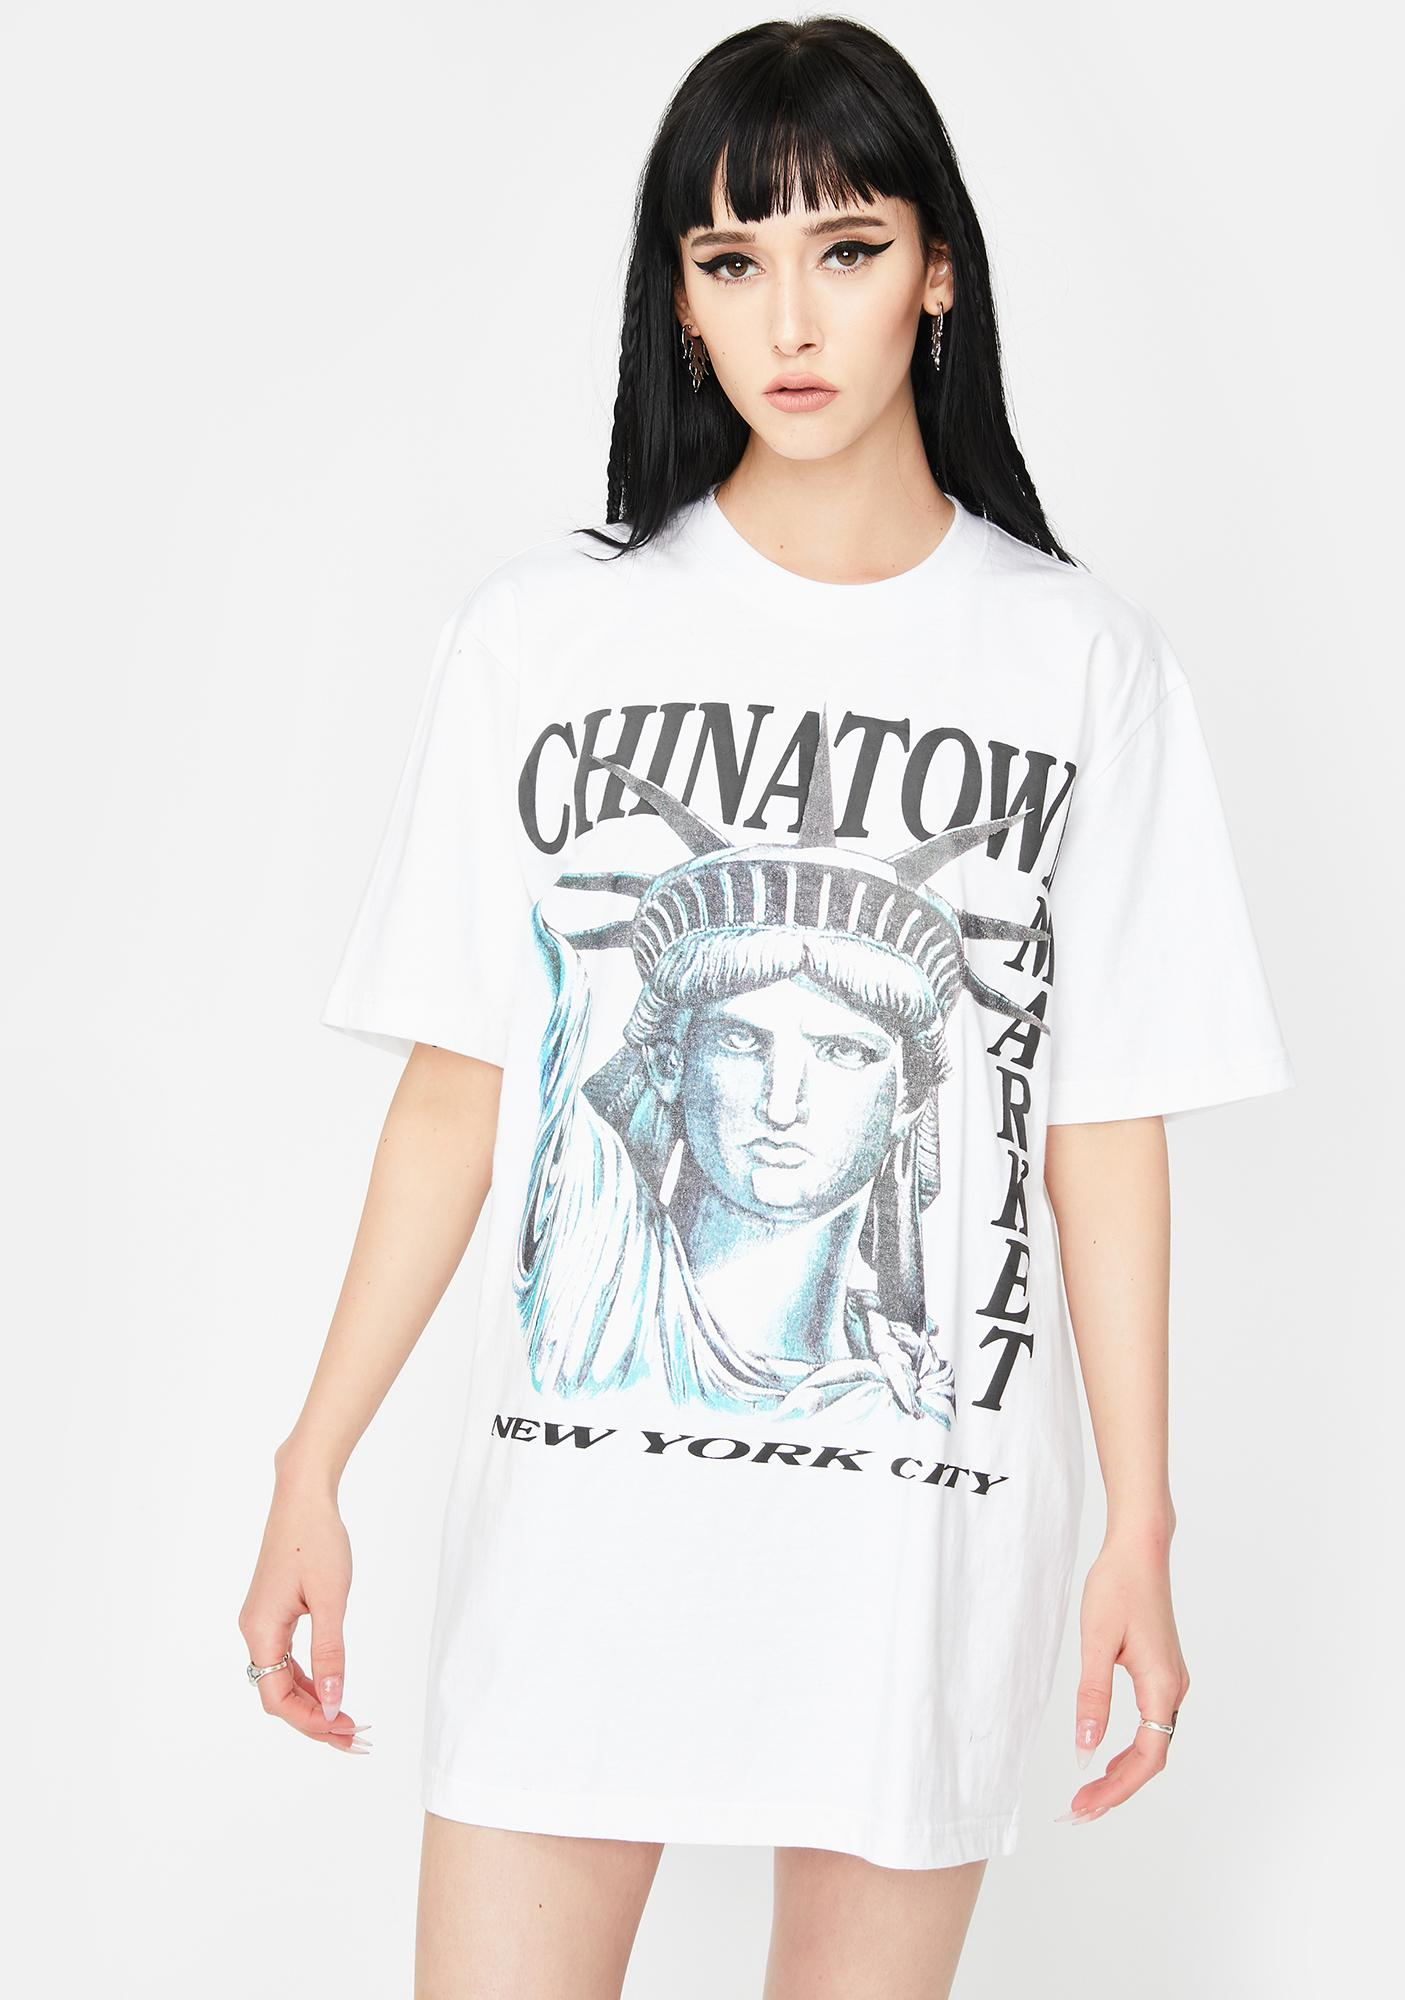 CHINATOWN MARKET NYC Graphic Tee